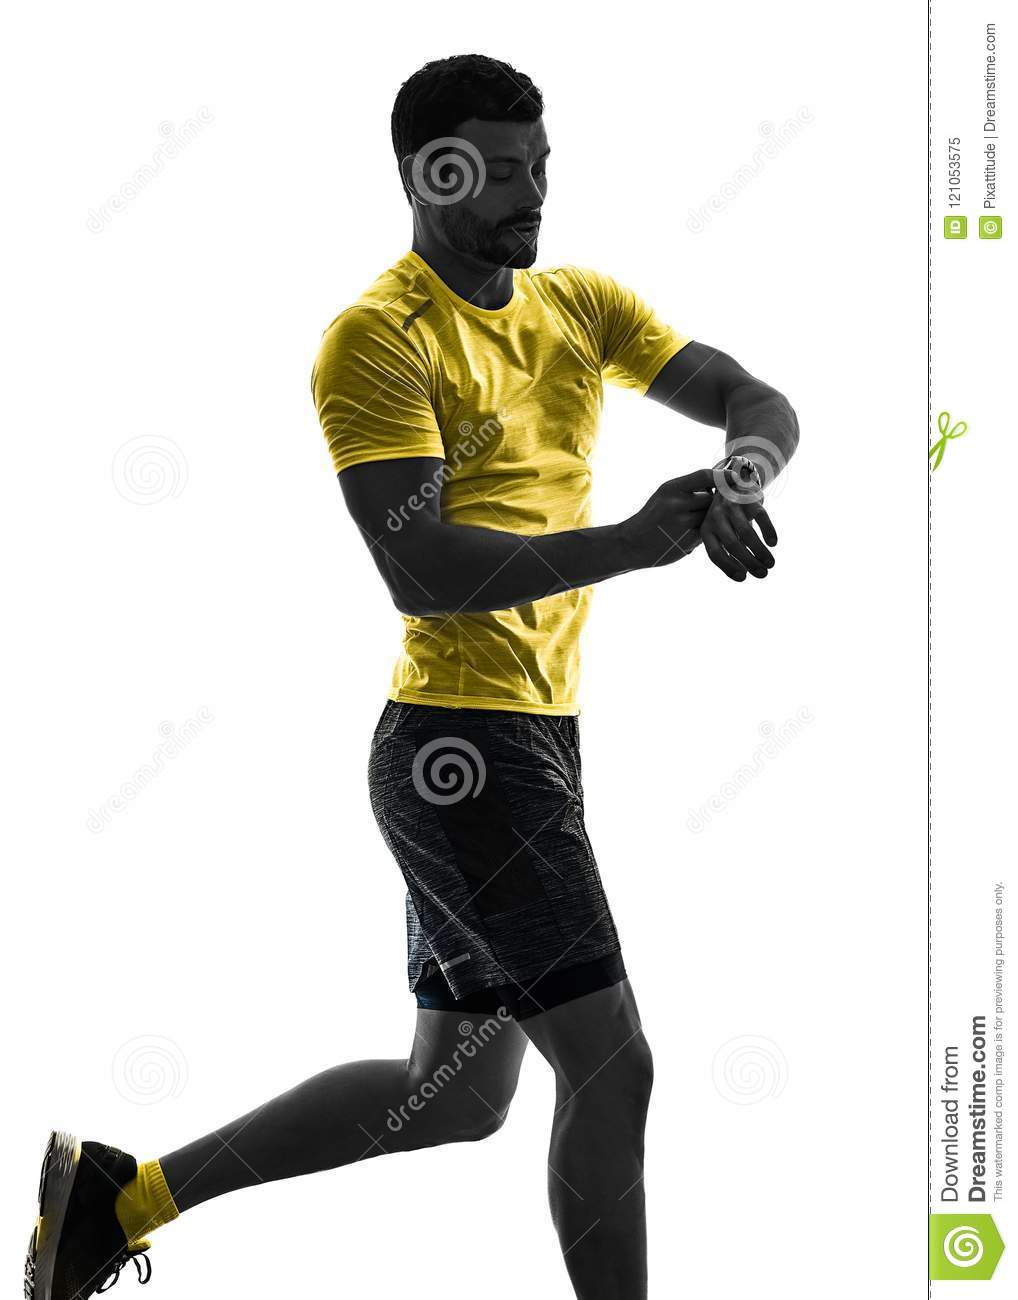 Jogging Run Time Man Runner Running Jogger Jogging Time Isolated Silhouette